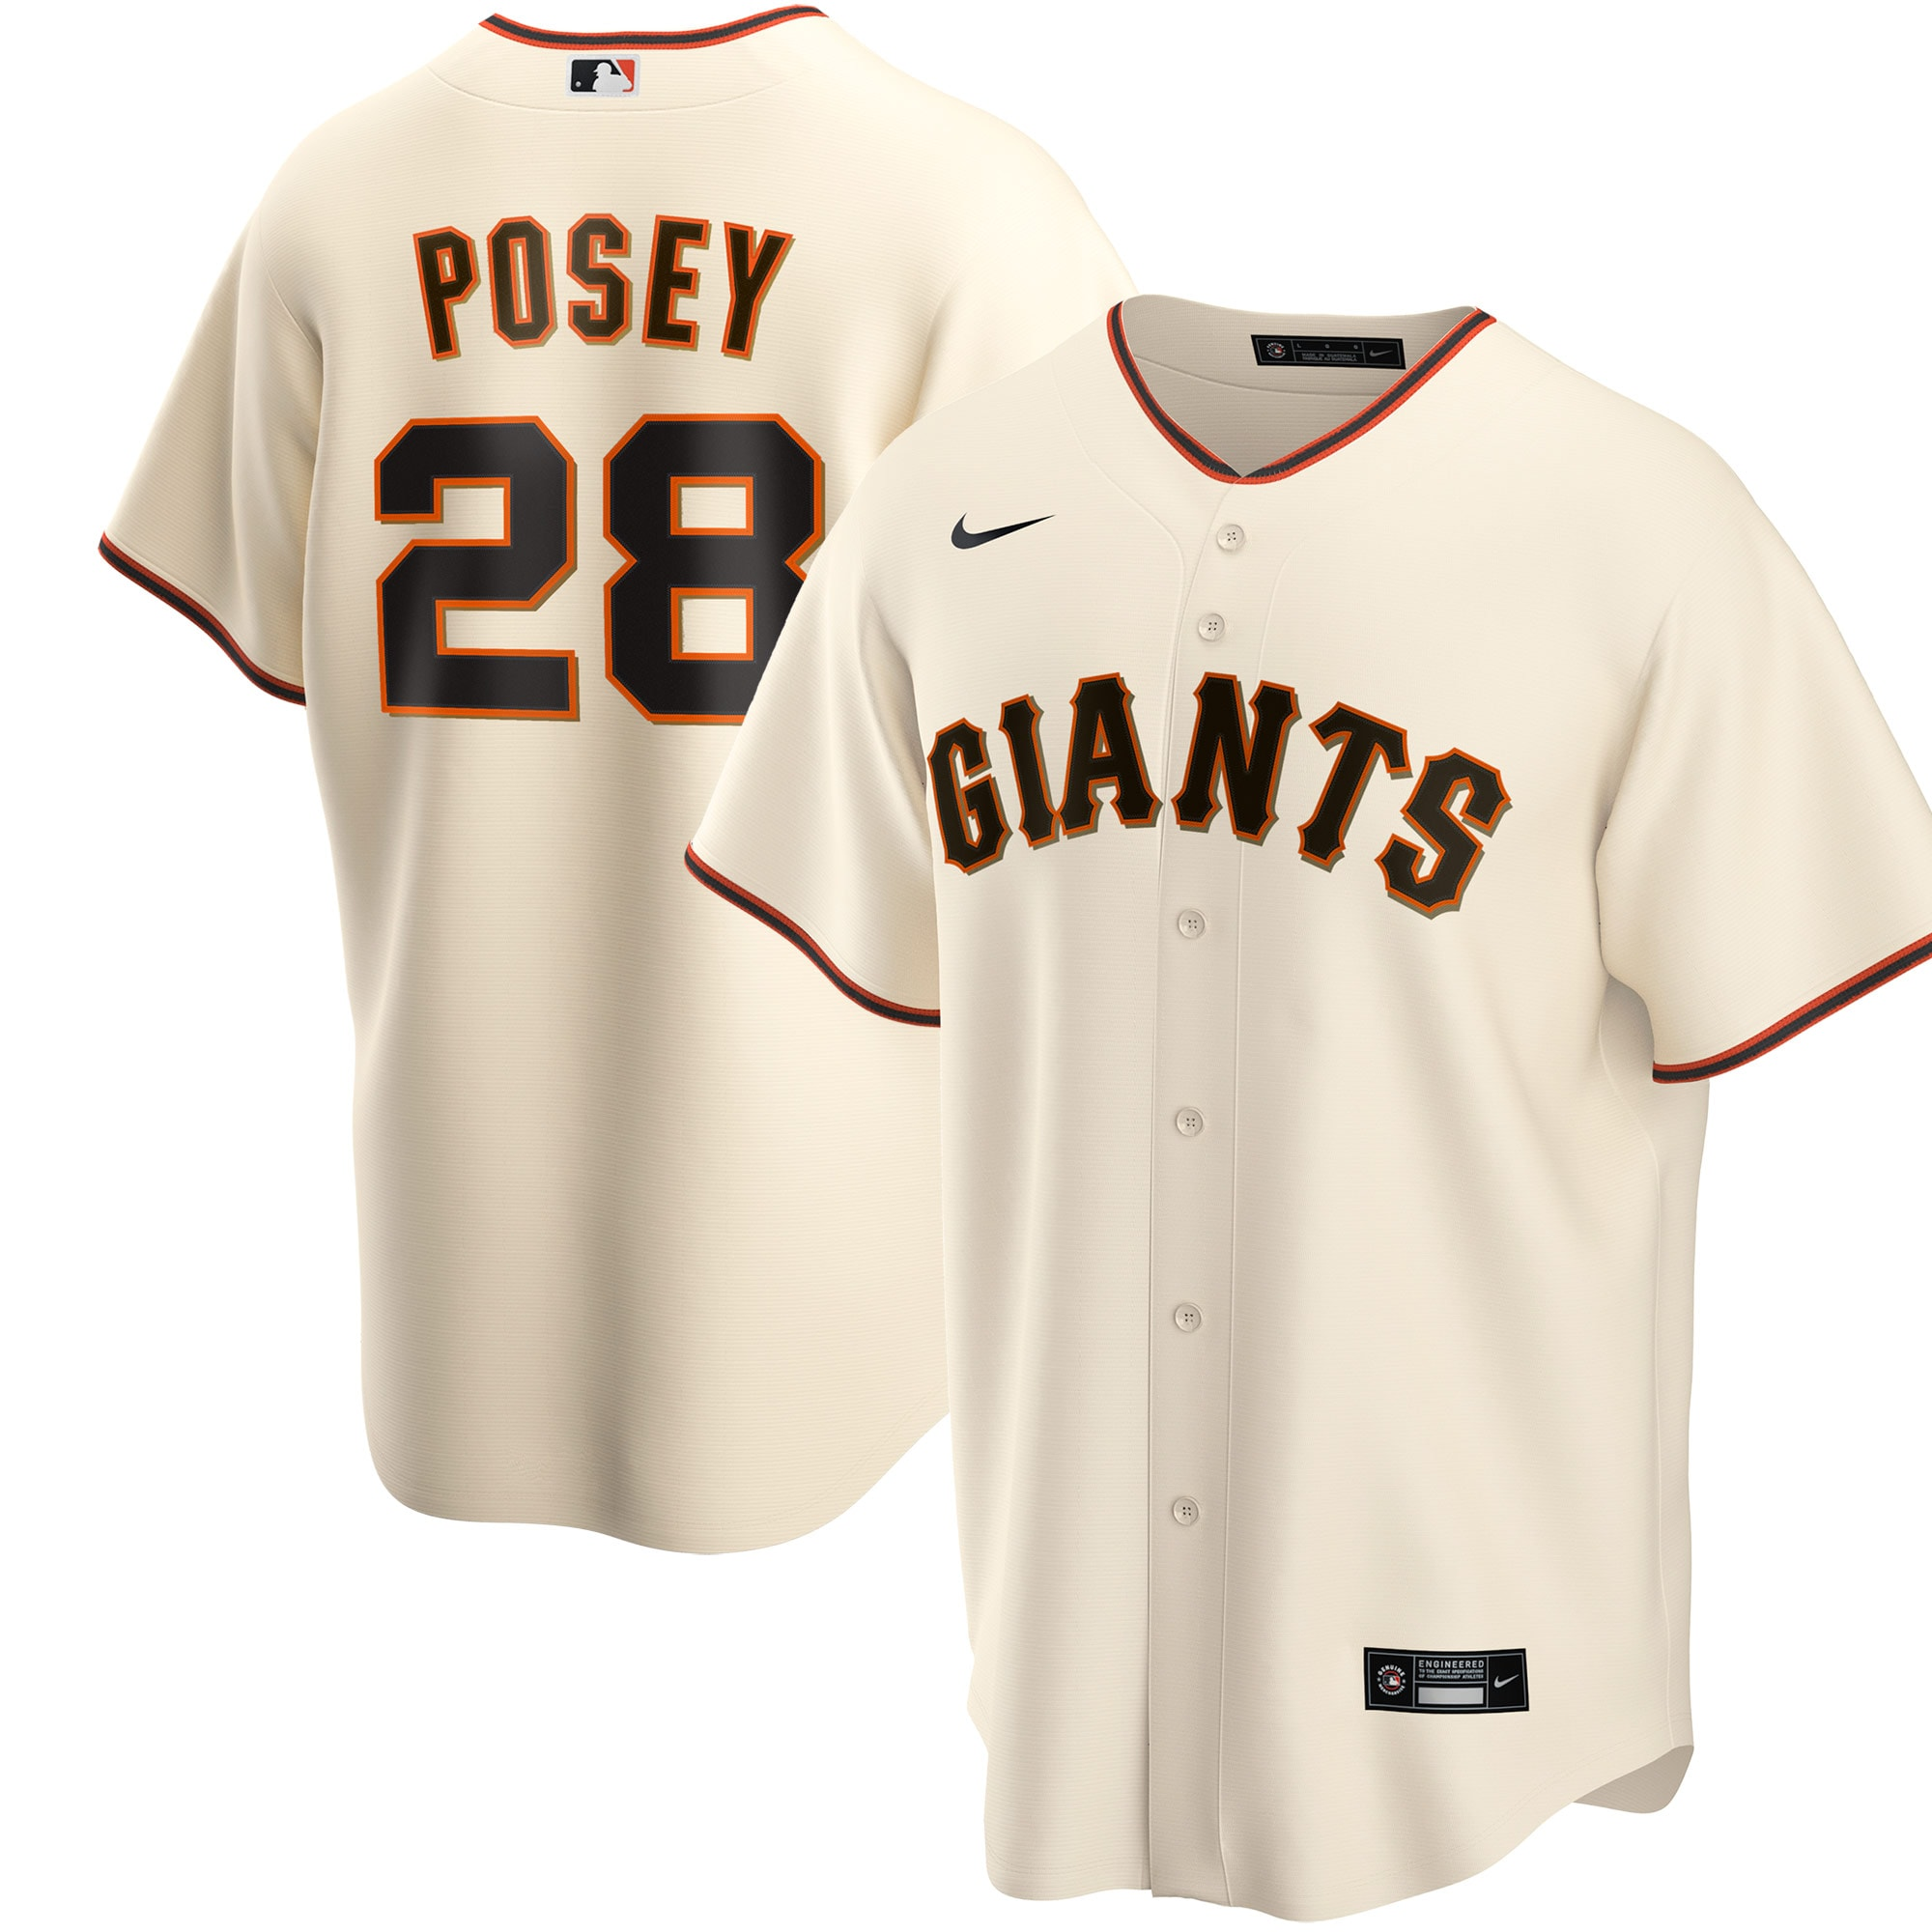 Buster Posey San Francisco Giants Nike Youth Home 2020 Replica Player Jersey - Cream